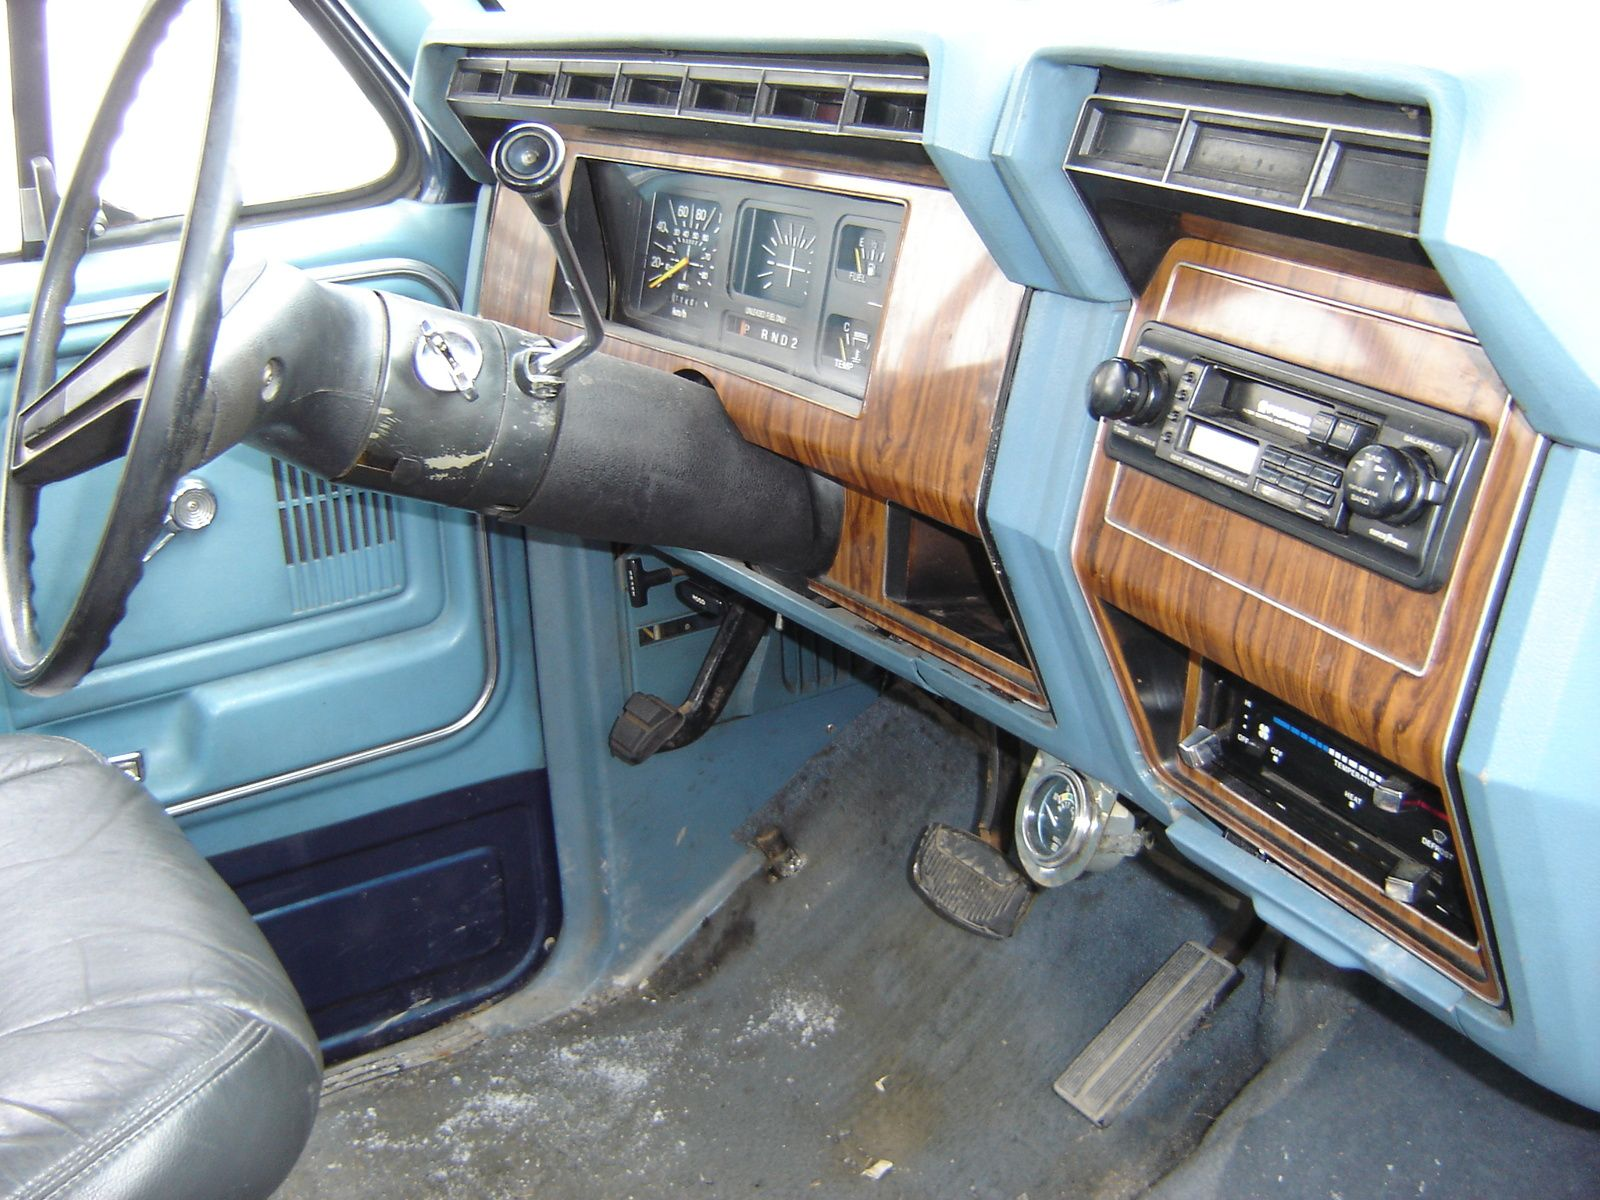 1980 Ford Truck Interior F 150 Pictures Cargurus Bronco Mirror